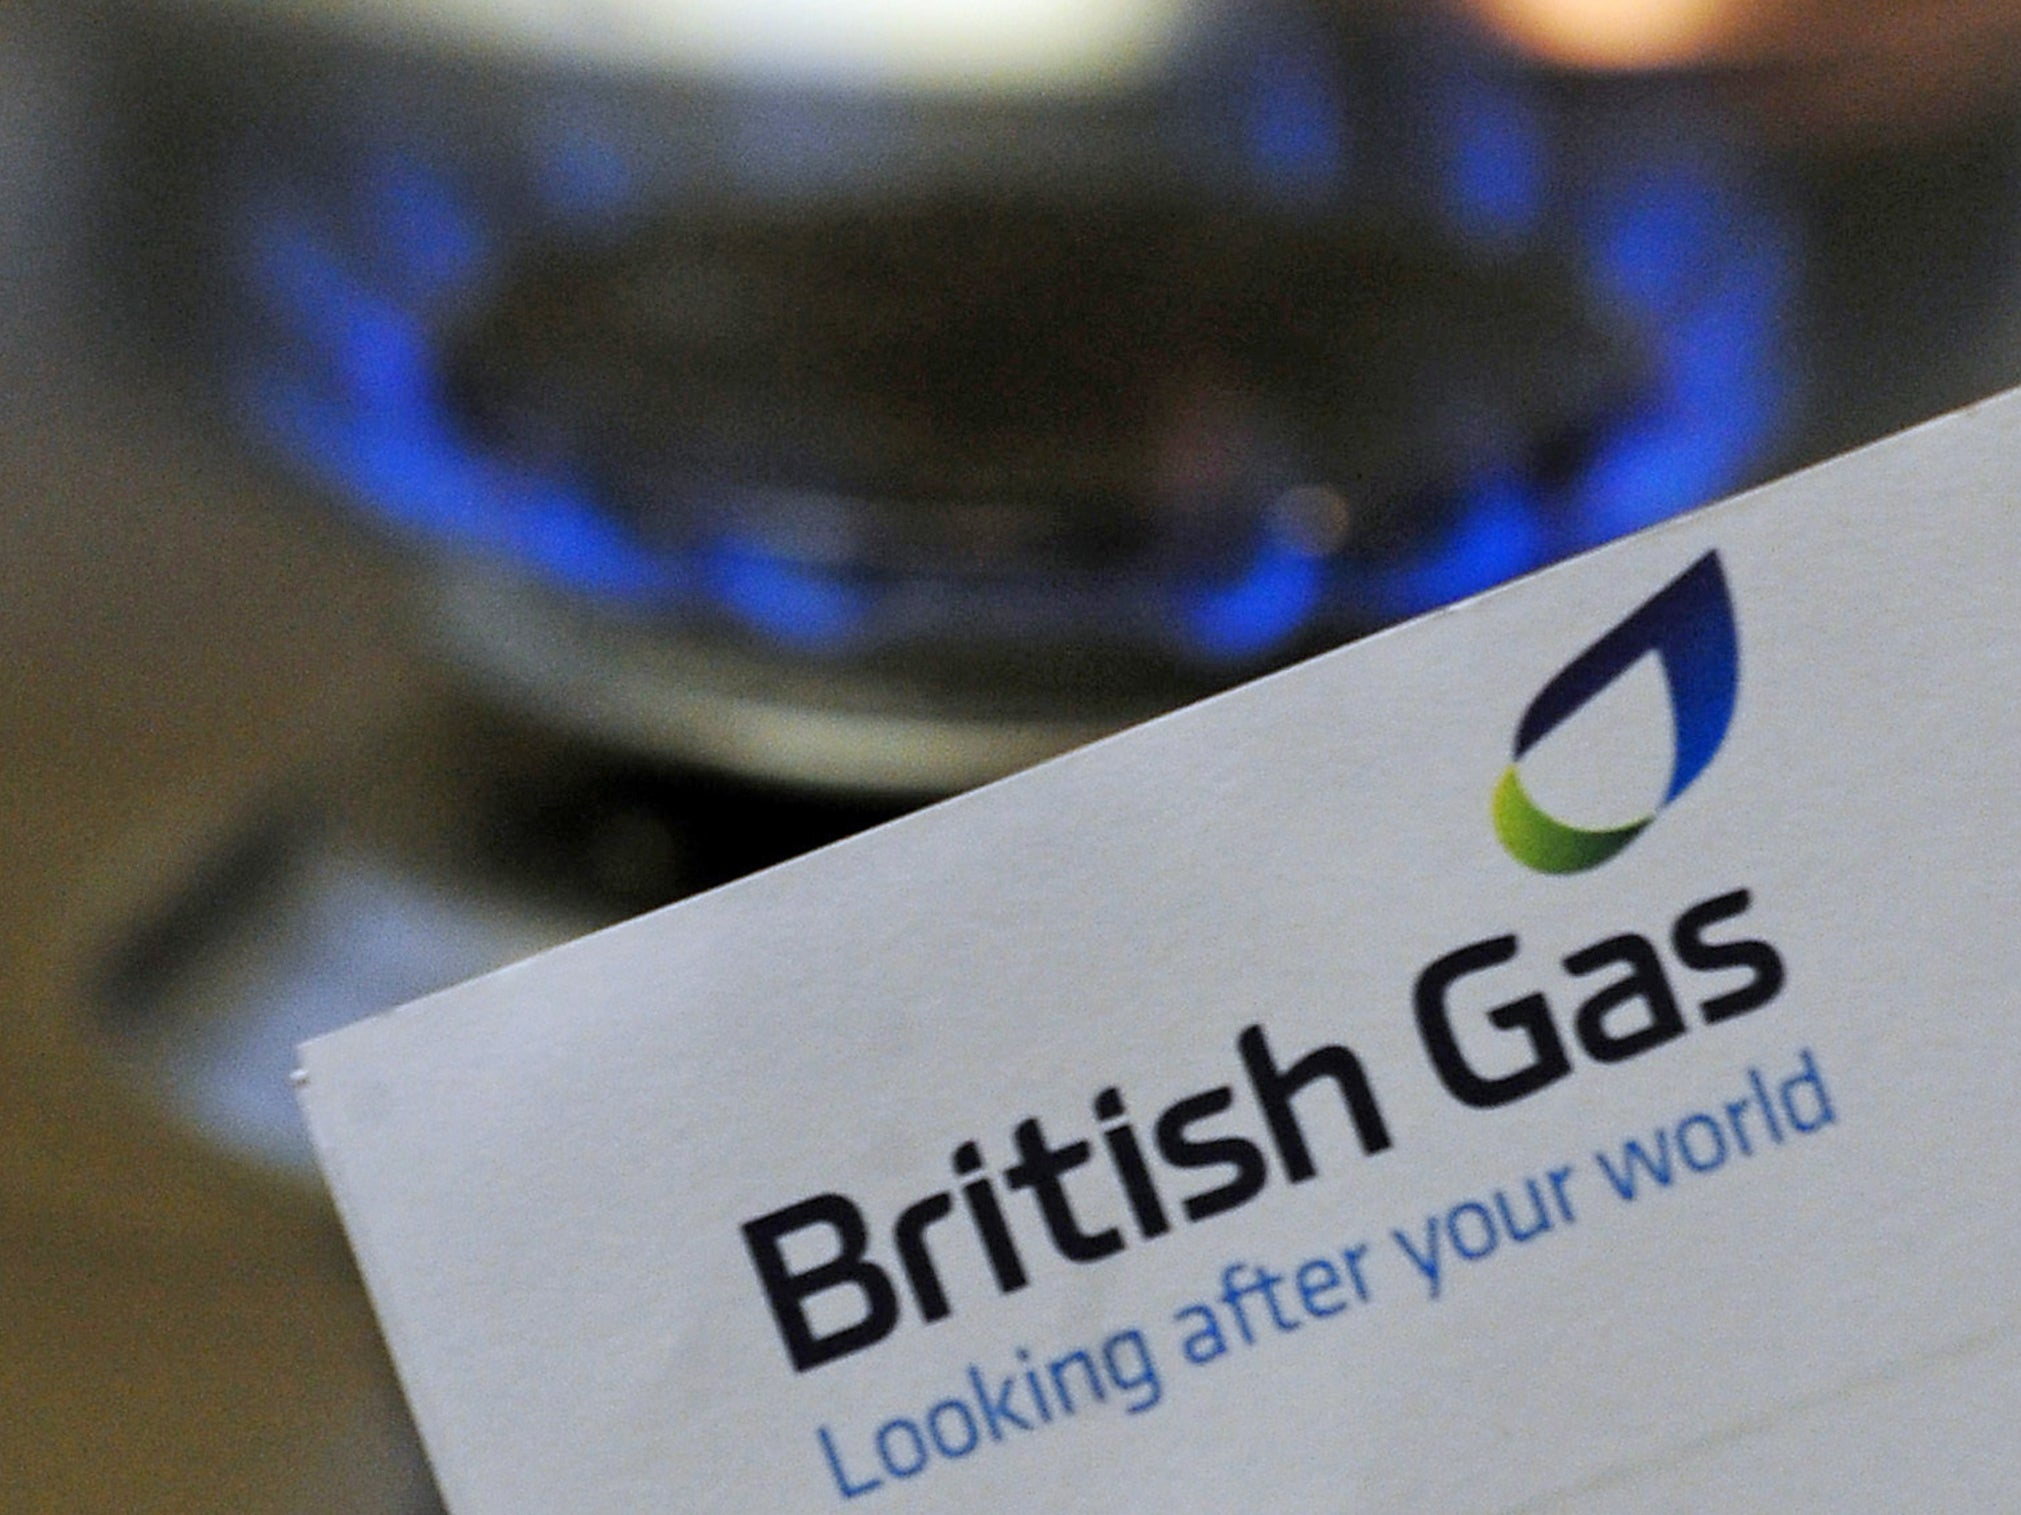 Energy Price Cap Could Mean People Missing Cheapest Deals Warns Consumer Champion The Independent The Independent